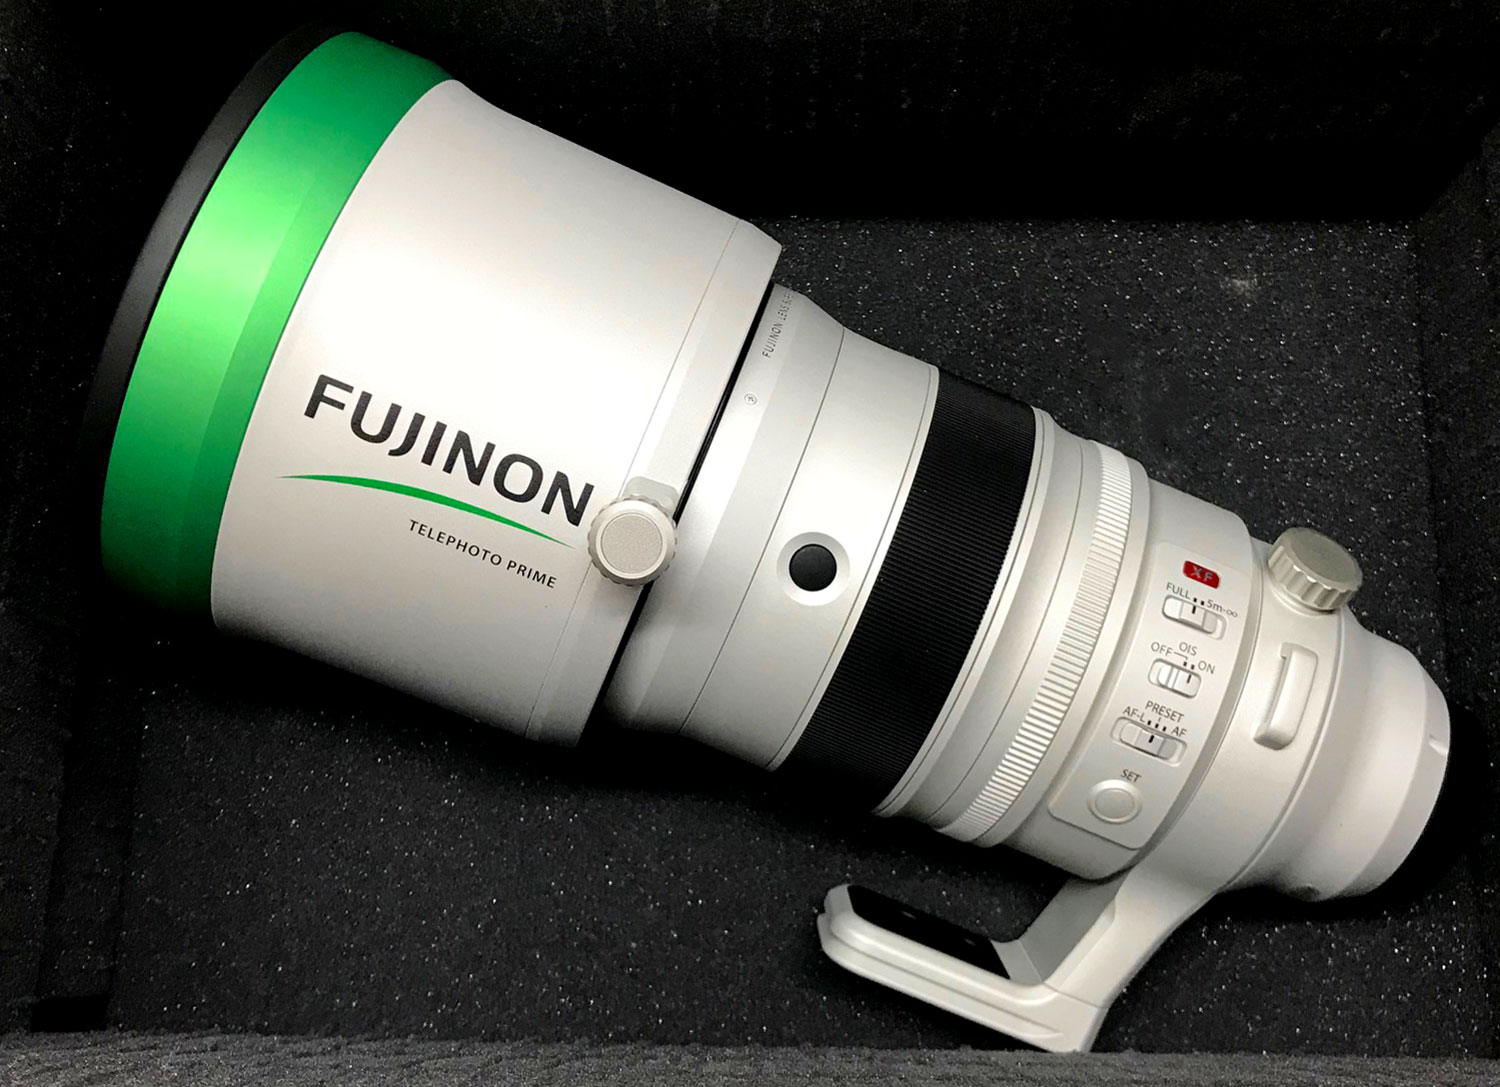 NOW IN STOCK: The Fujifilm XF200mmF2 R LM OIS WR